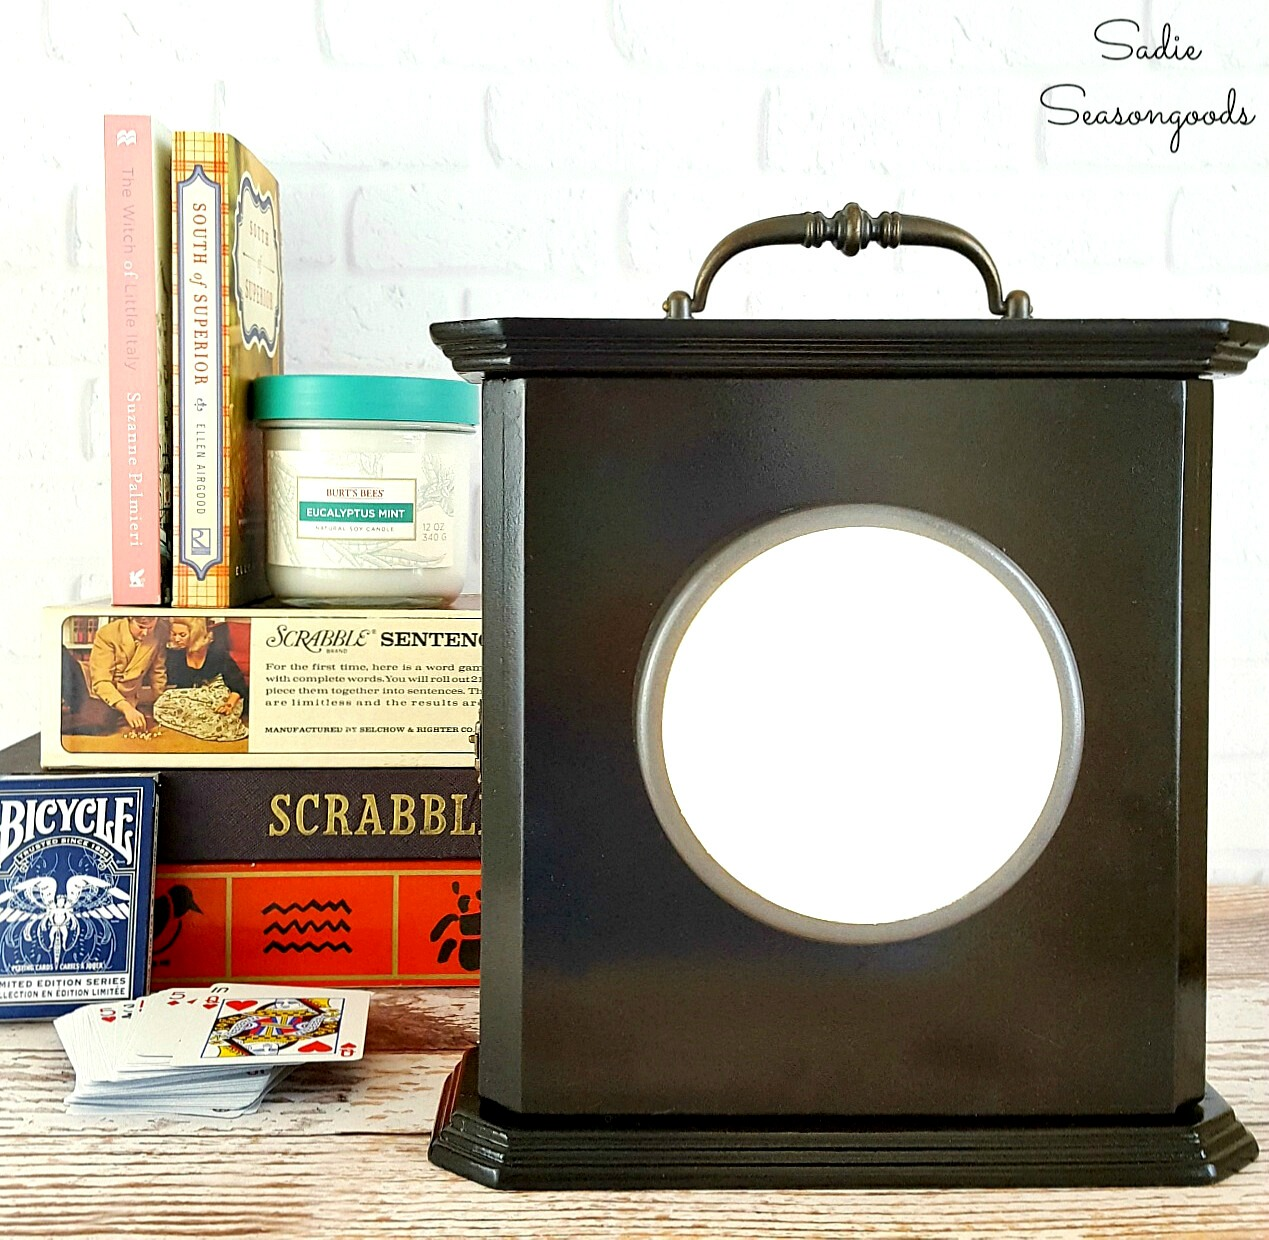 DIY power outage clock lantern by Sadie Seasongoods, featured on Funky Junk Interiors